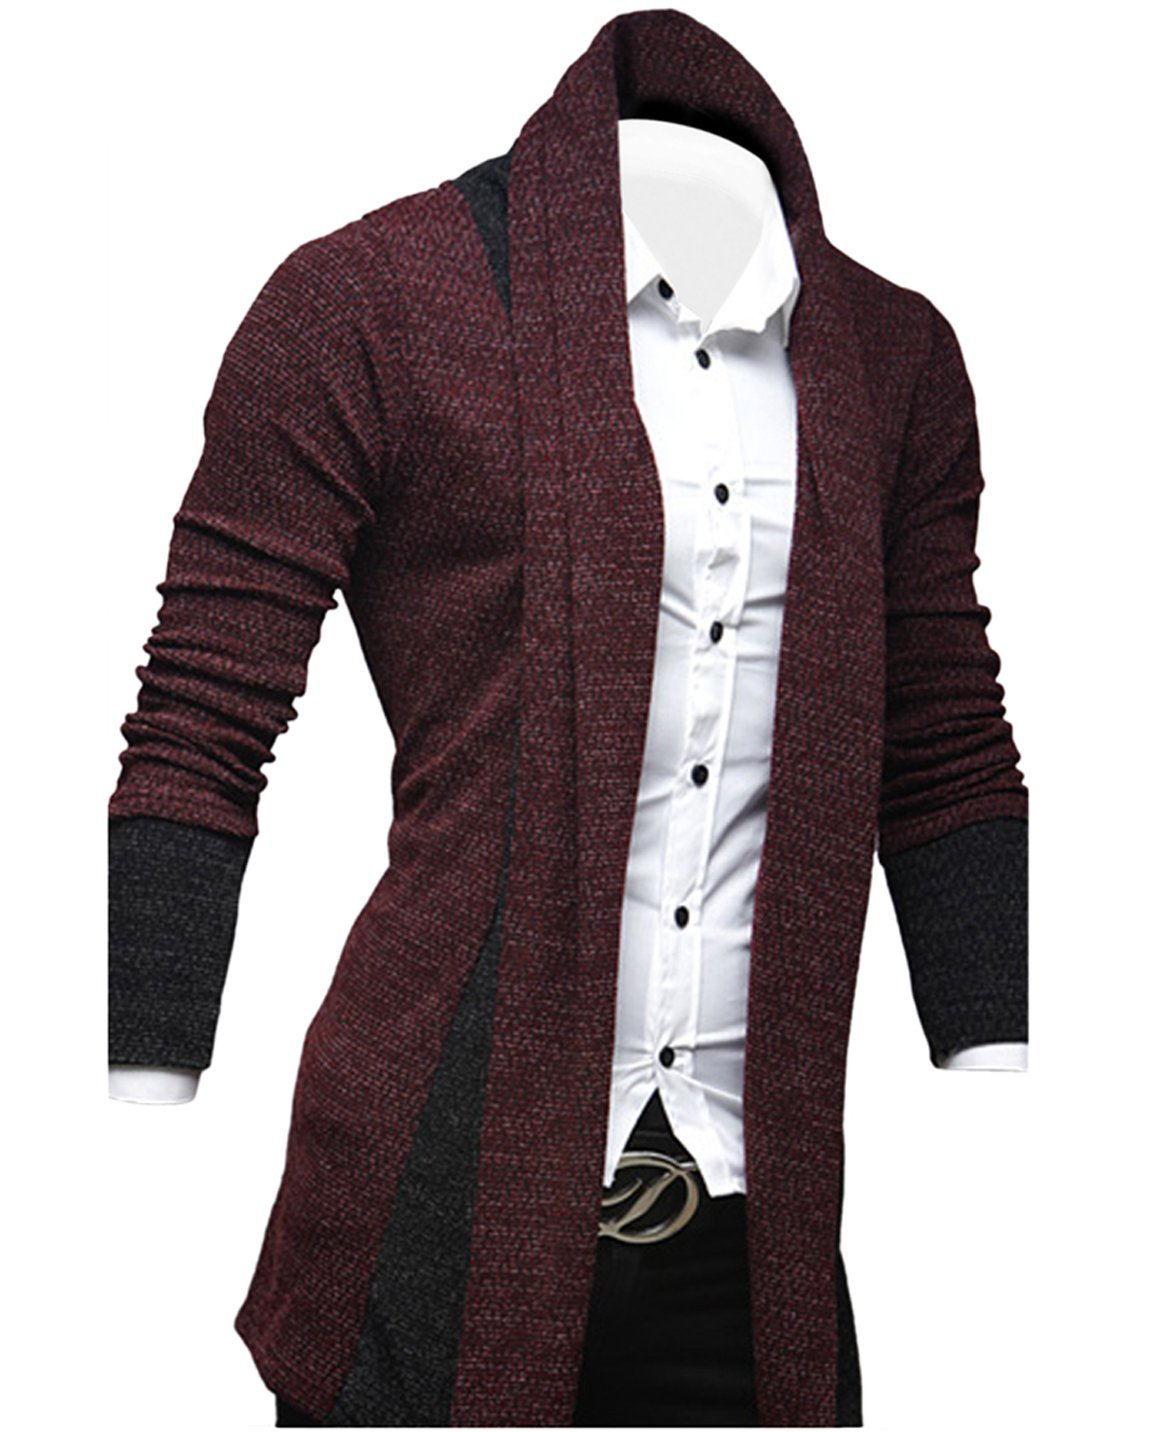 Tom's Ware Mens Classic Fashion Marled Open-Front Shawl Collar Cardigan TWGG1308-WINE-US M by Tom's Ware